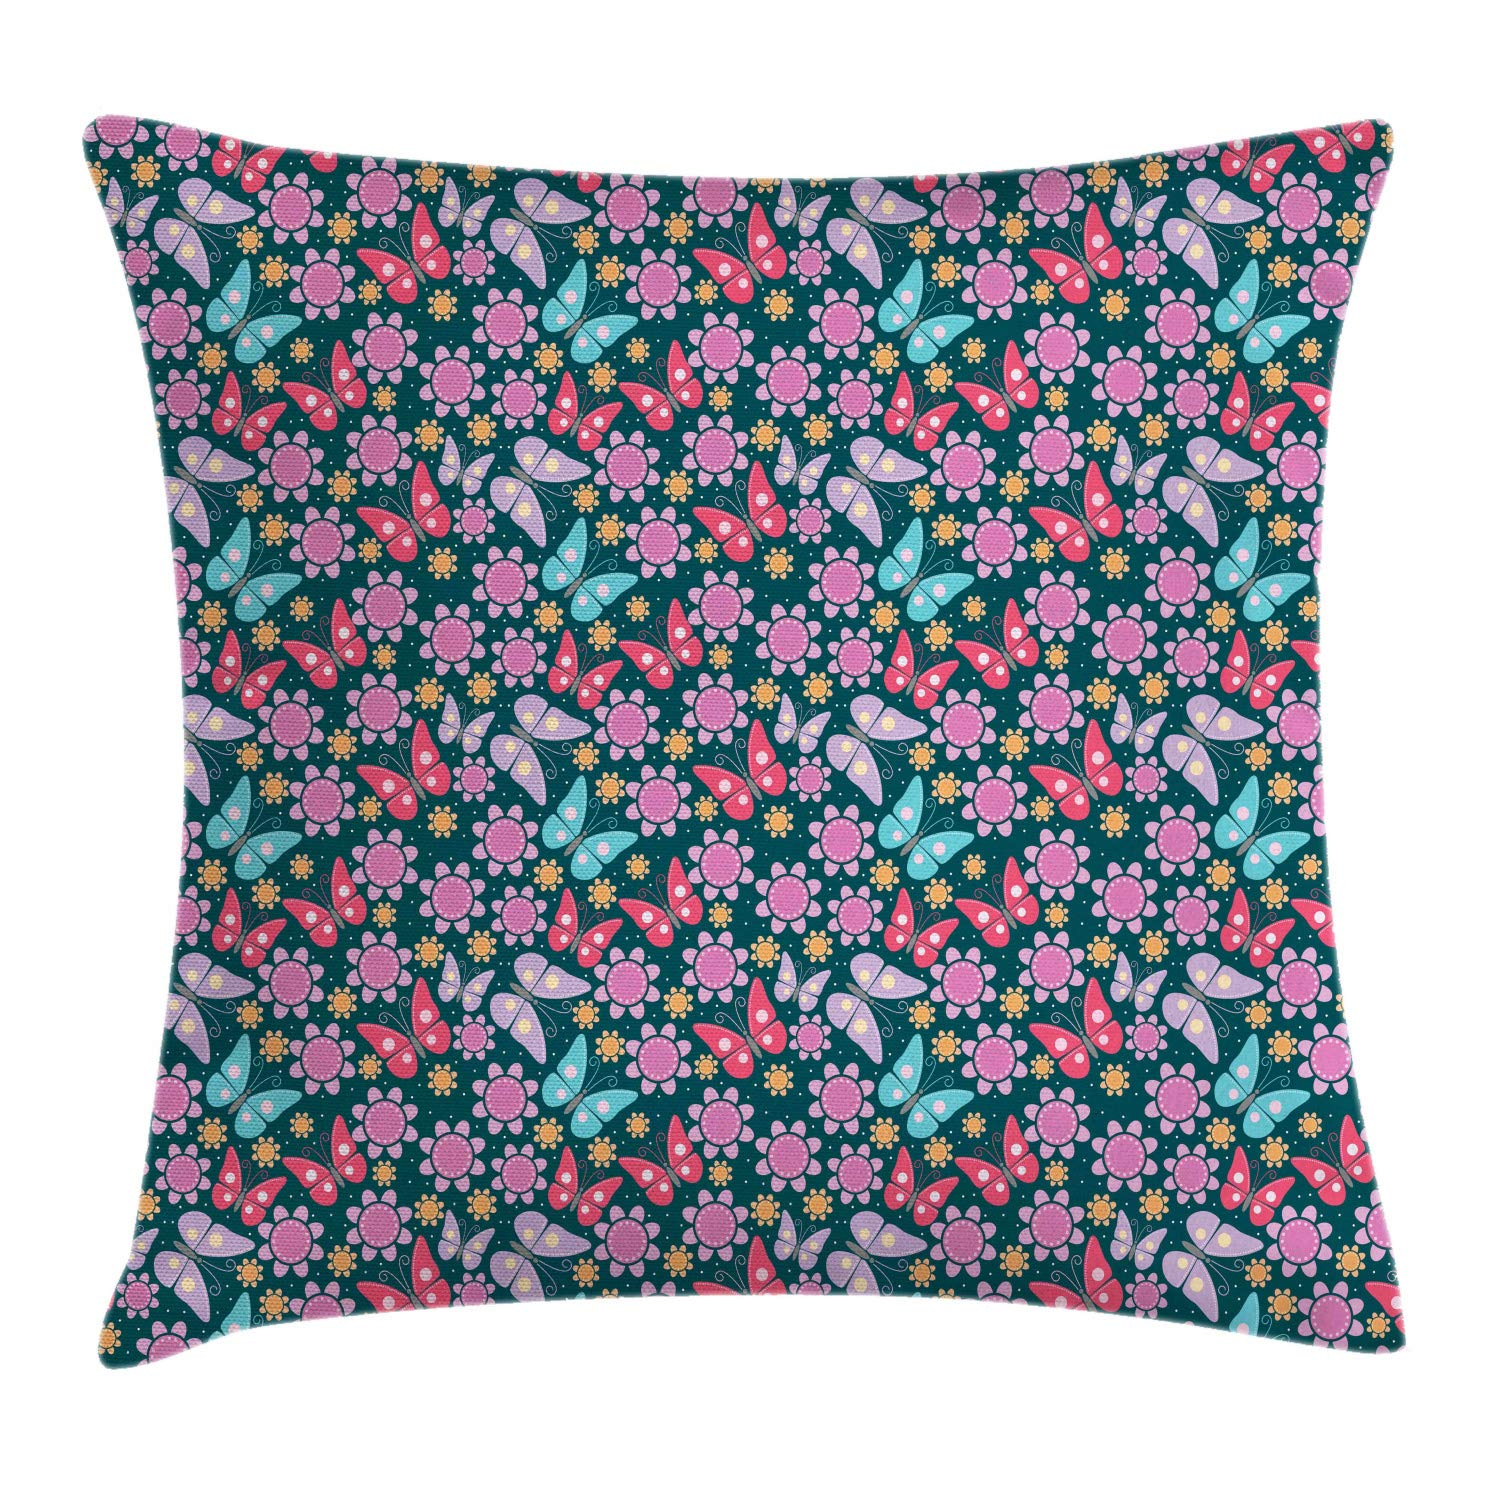 Lunarable Nursery Throw Pillow Cushion Cover, Happy Illustration with Flowers and Butterflies Colorful Spring Breeze Cartoon, Decorative Square Accent Pillow Case, 24'' X 24'', Multicolor by Lunarable